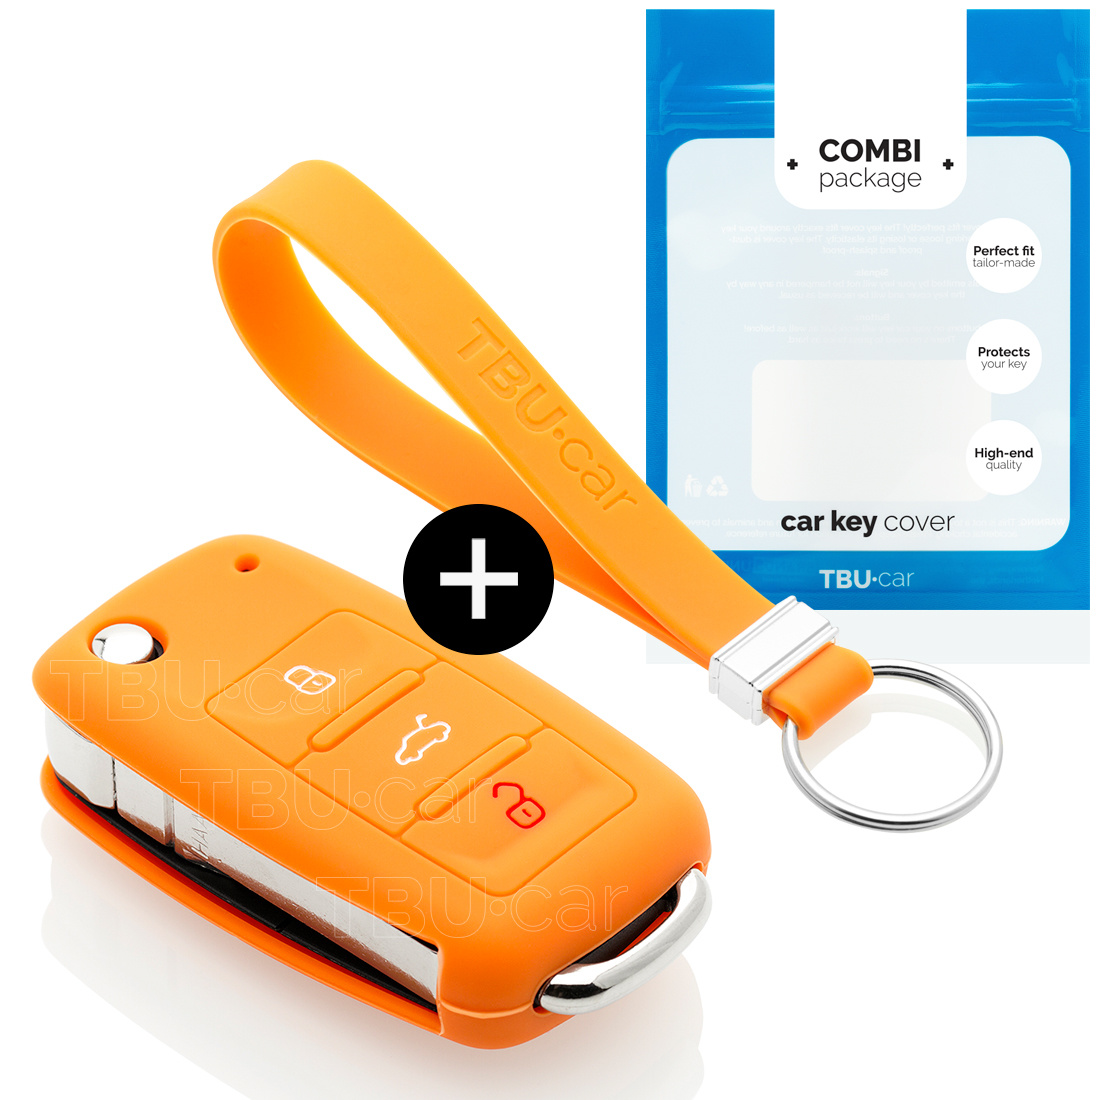 Audi Car key cover - Silicone Protective Remote Key Shell - FOB Case Cover - Orange